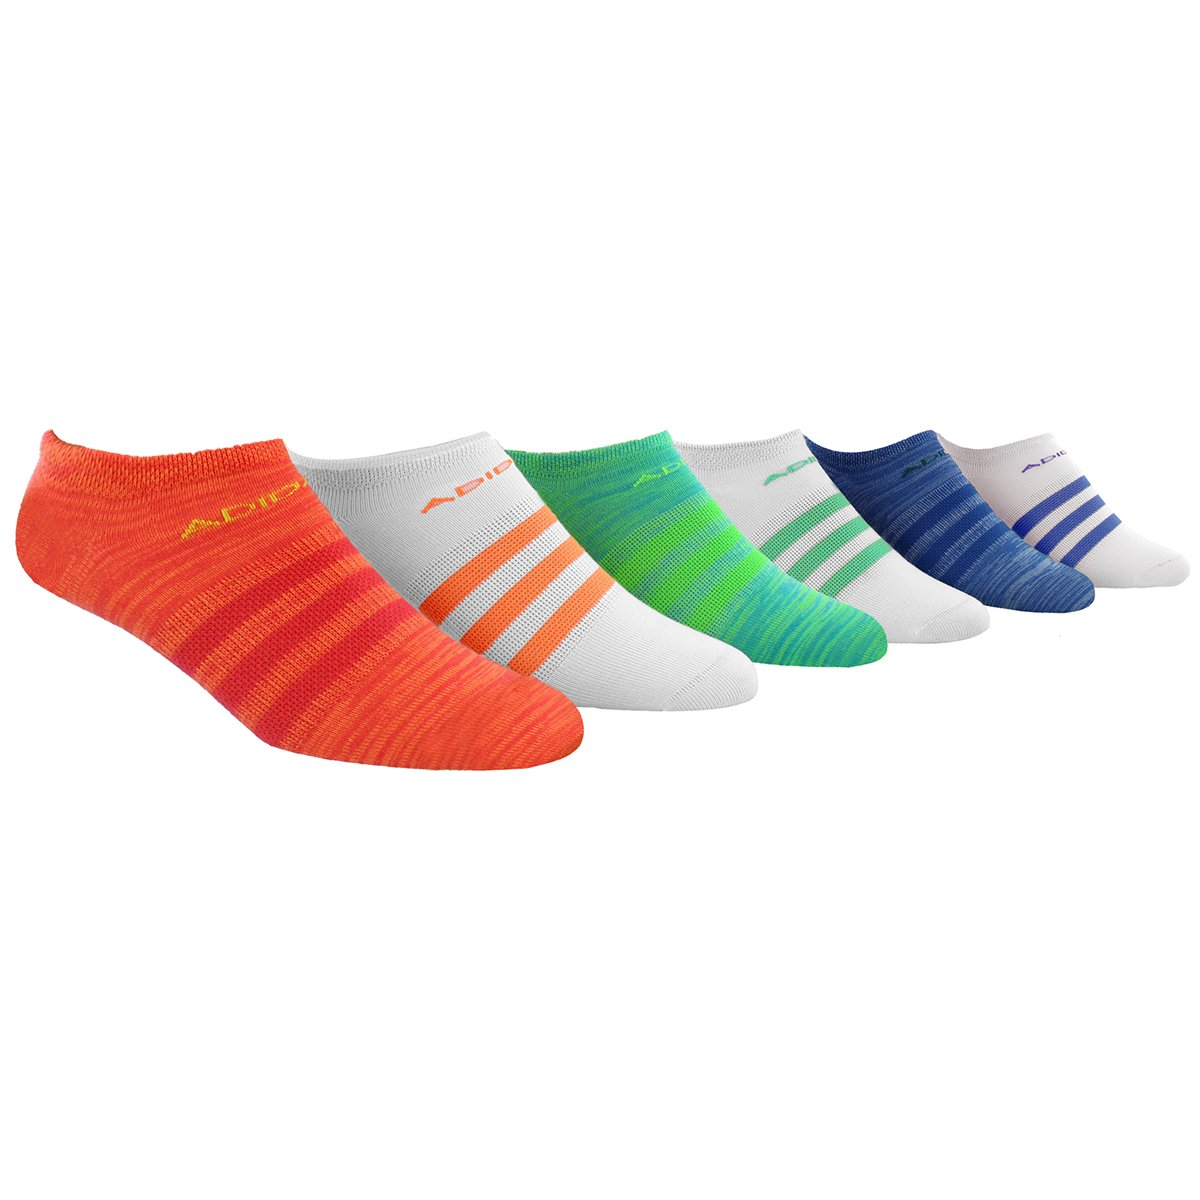 adidas Women's Superlite No Show Socks (6 Pack), Red/Glow Orange/Green/Ray Blue/Ink Purple,Women's Sock size (5-10)